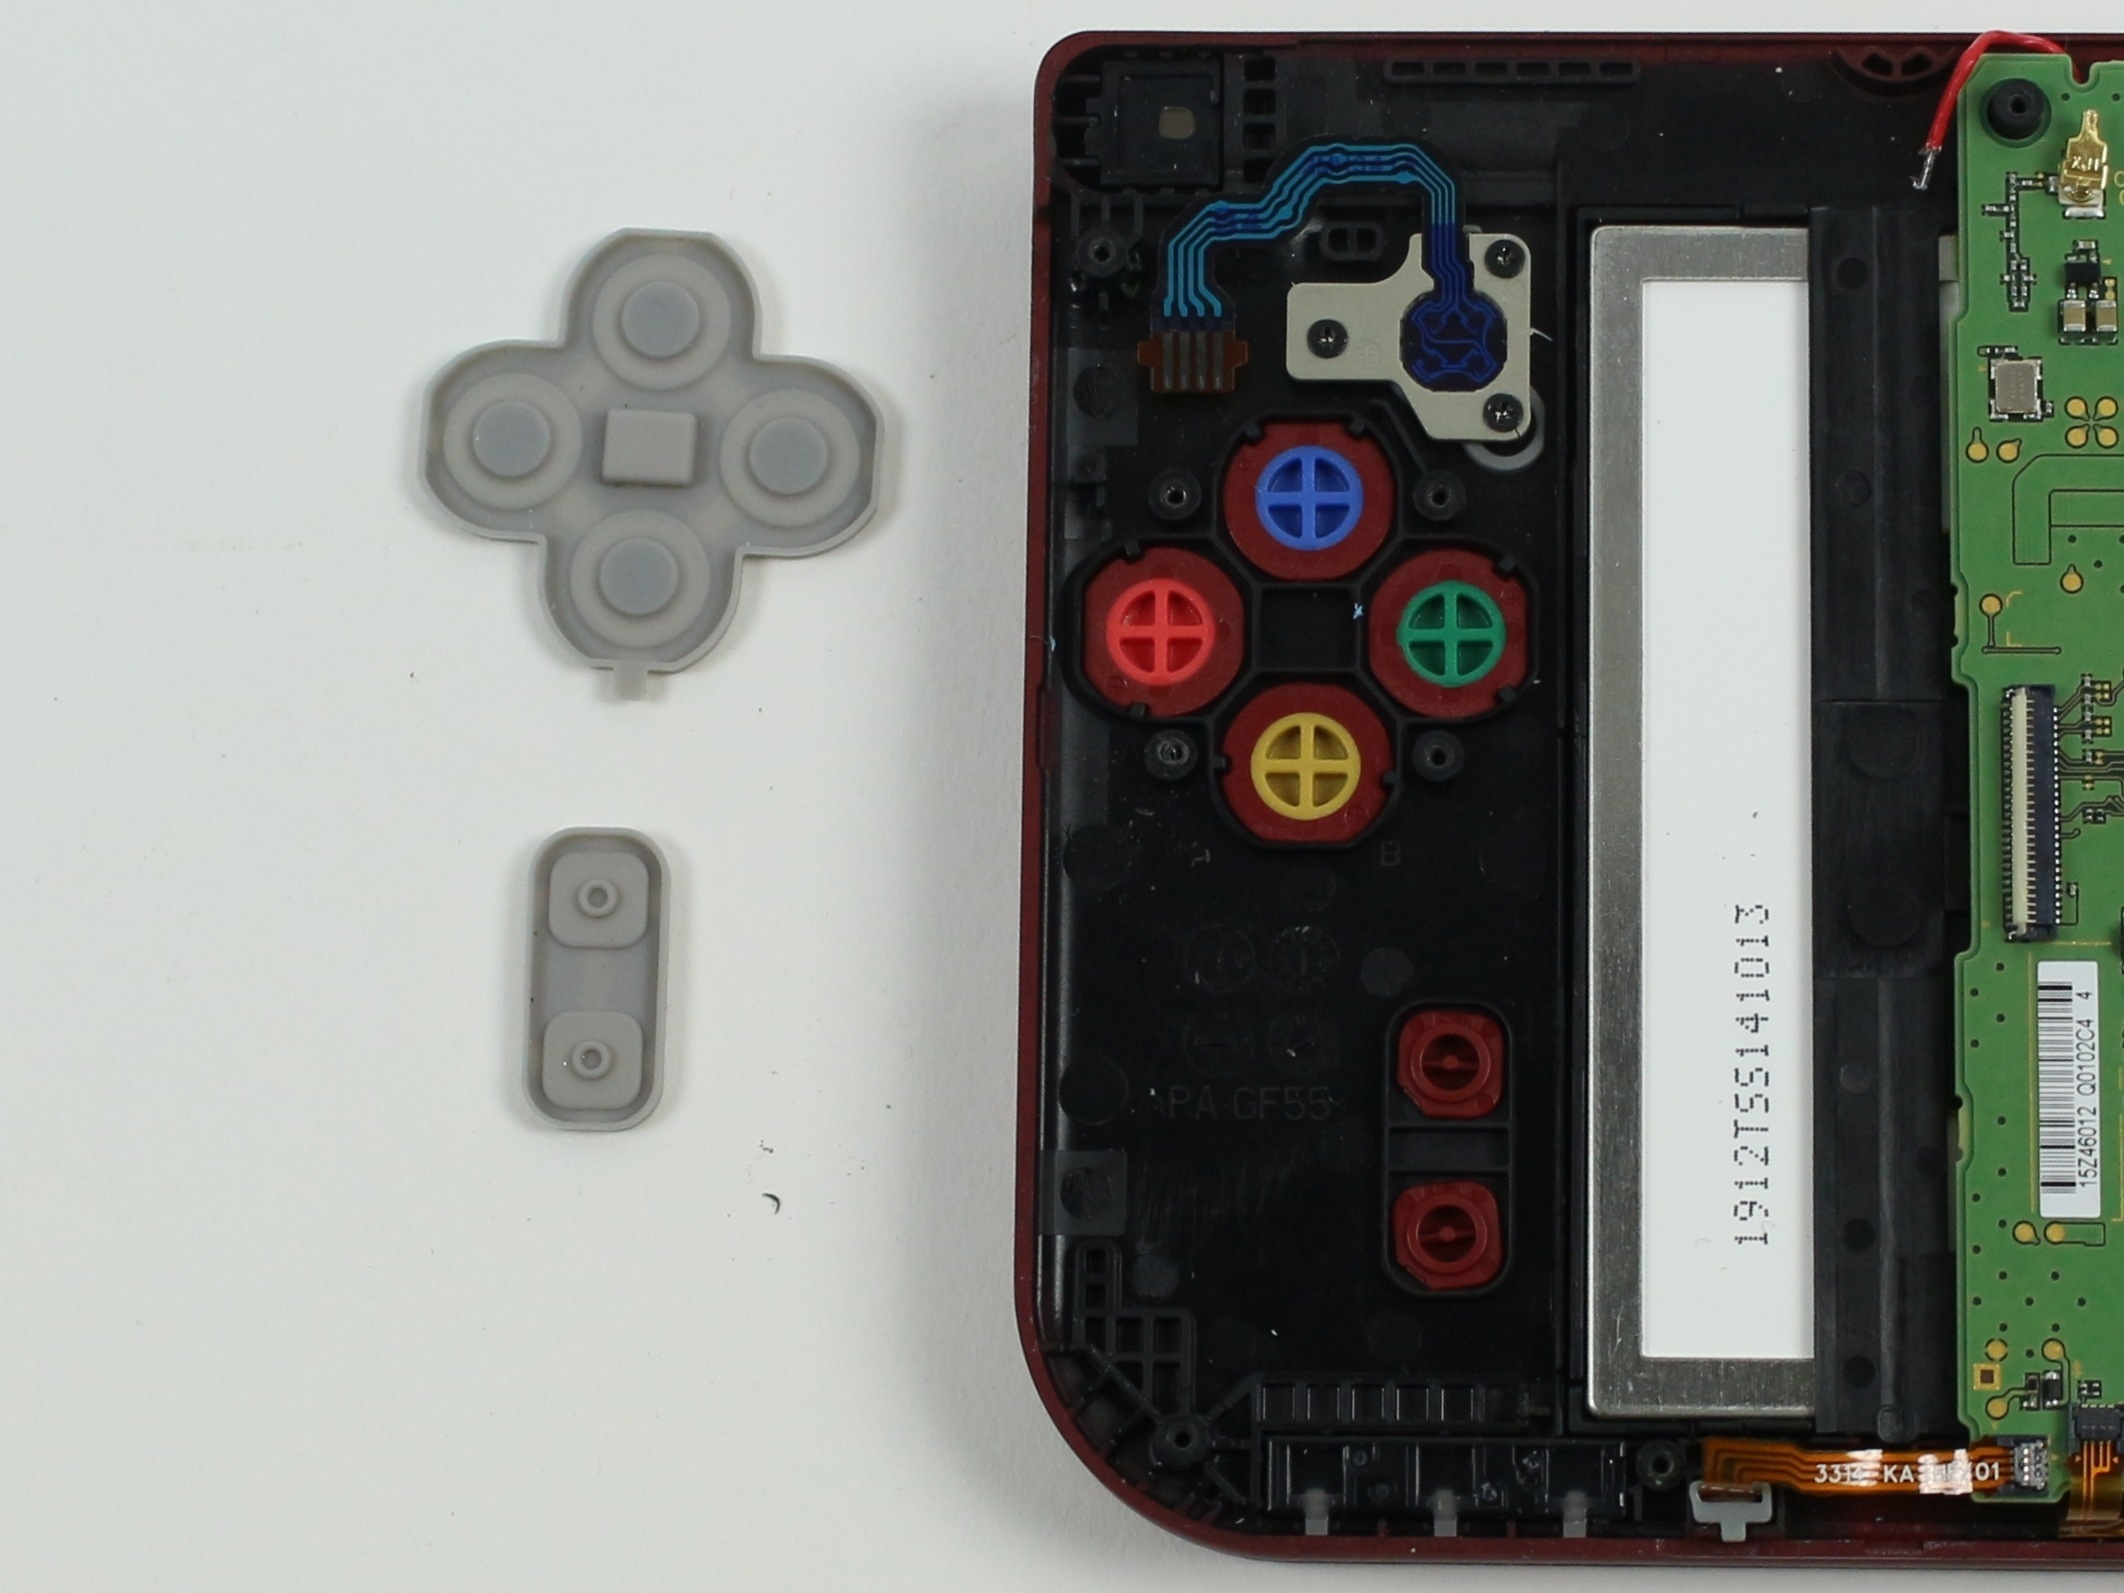 Nintendo 3ds Xl 2015 Abxy Start Or Select Button Replacement Wiring Diagram Ifixit Repair Guide